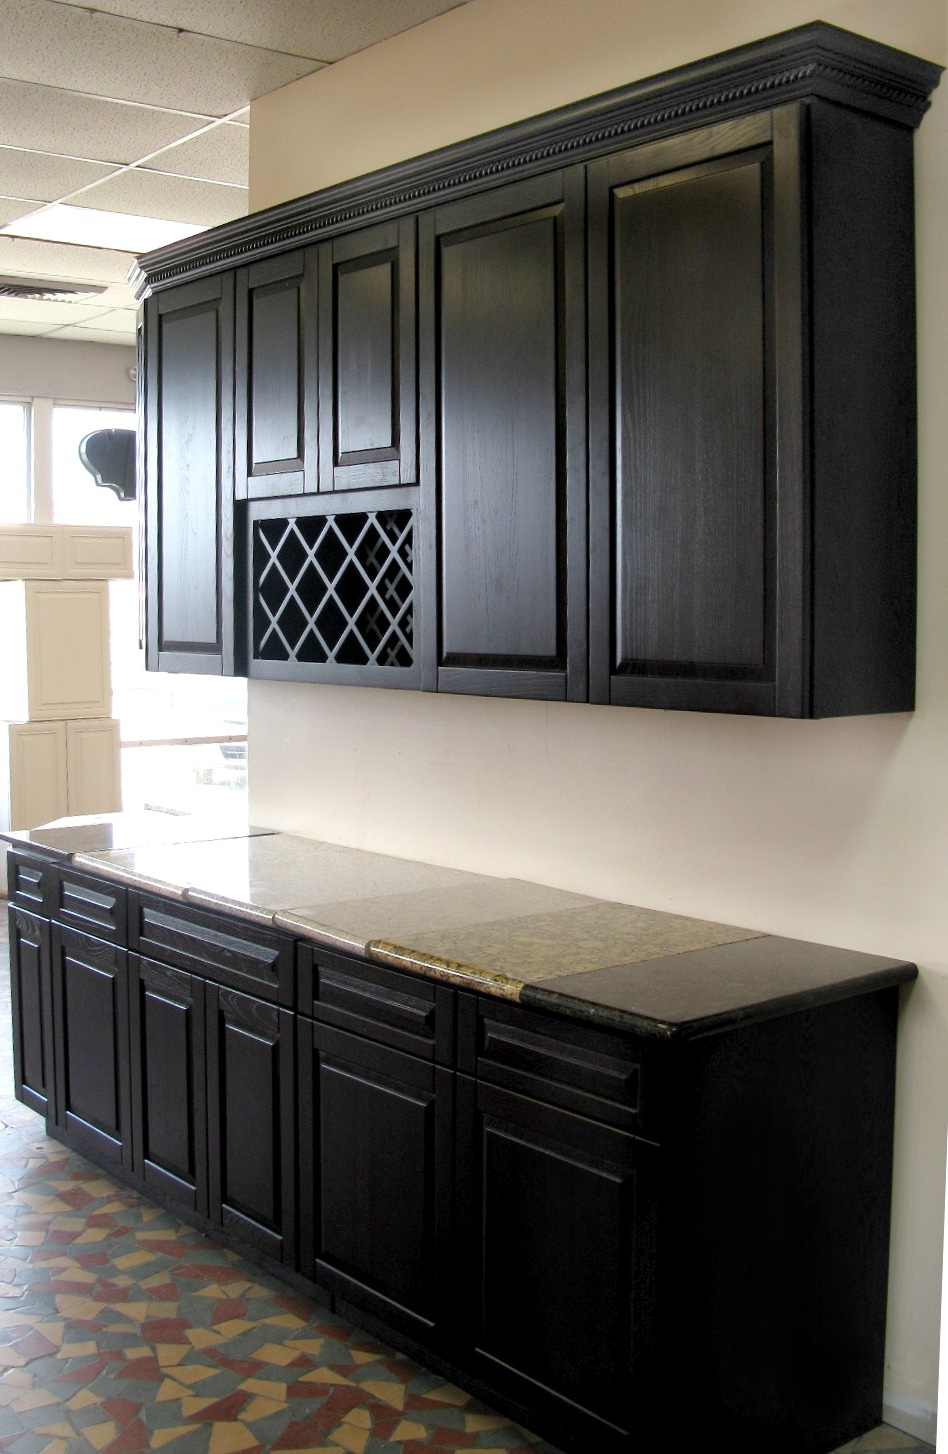 Cabinets for kitchen photos black kitchen cabinets for Black kitchen cabinet design ideas